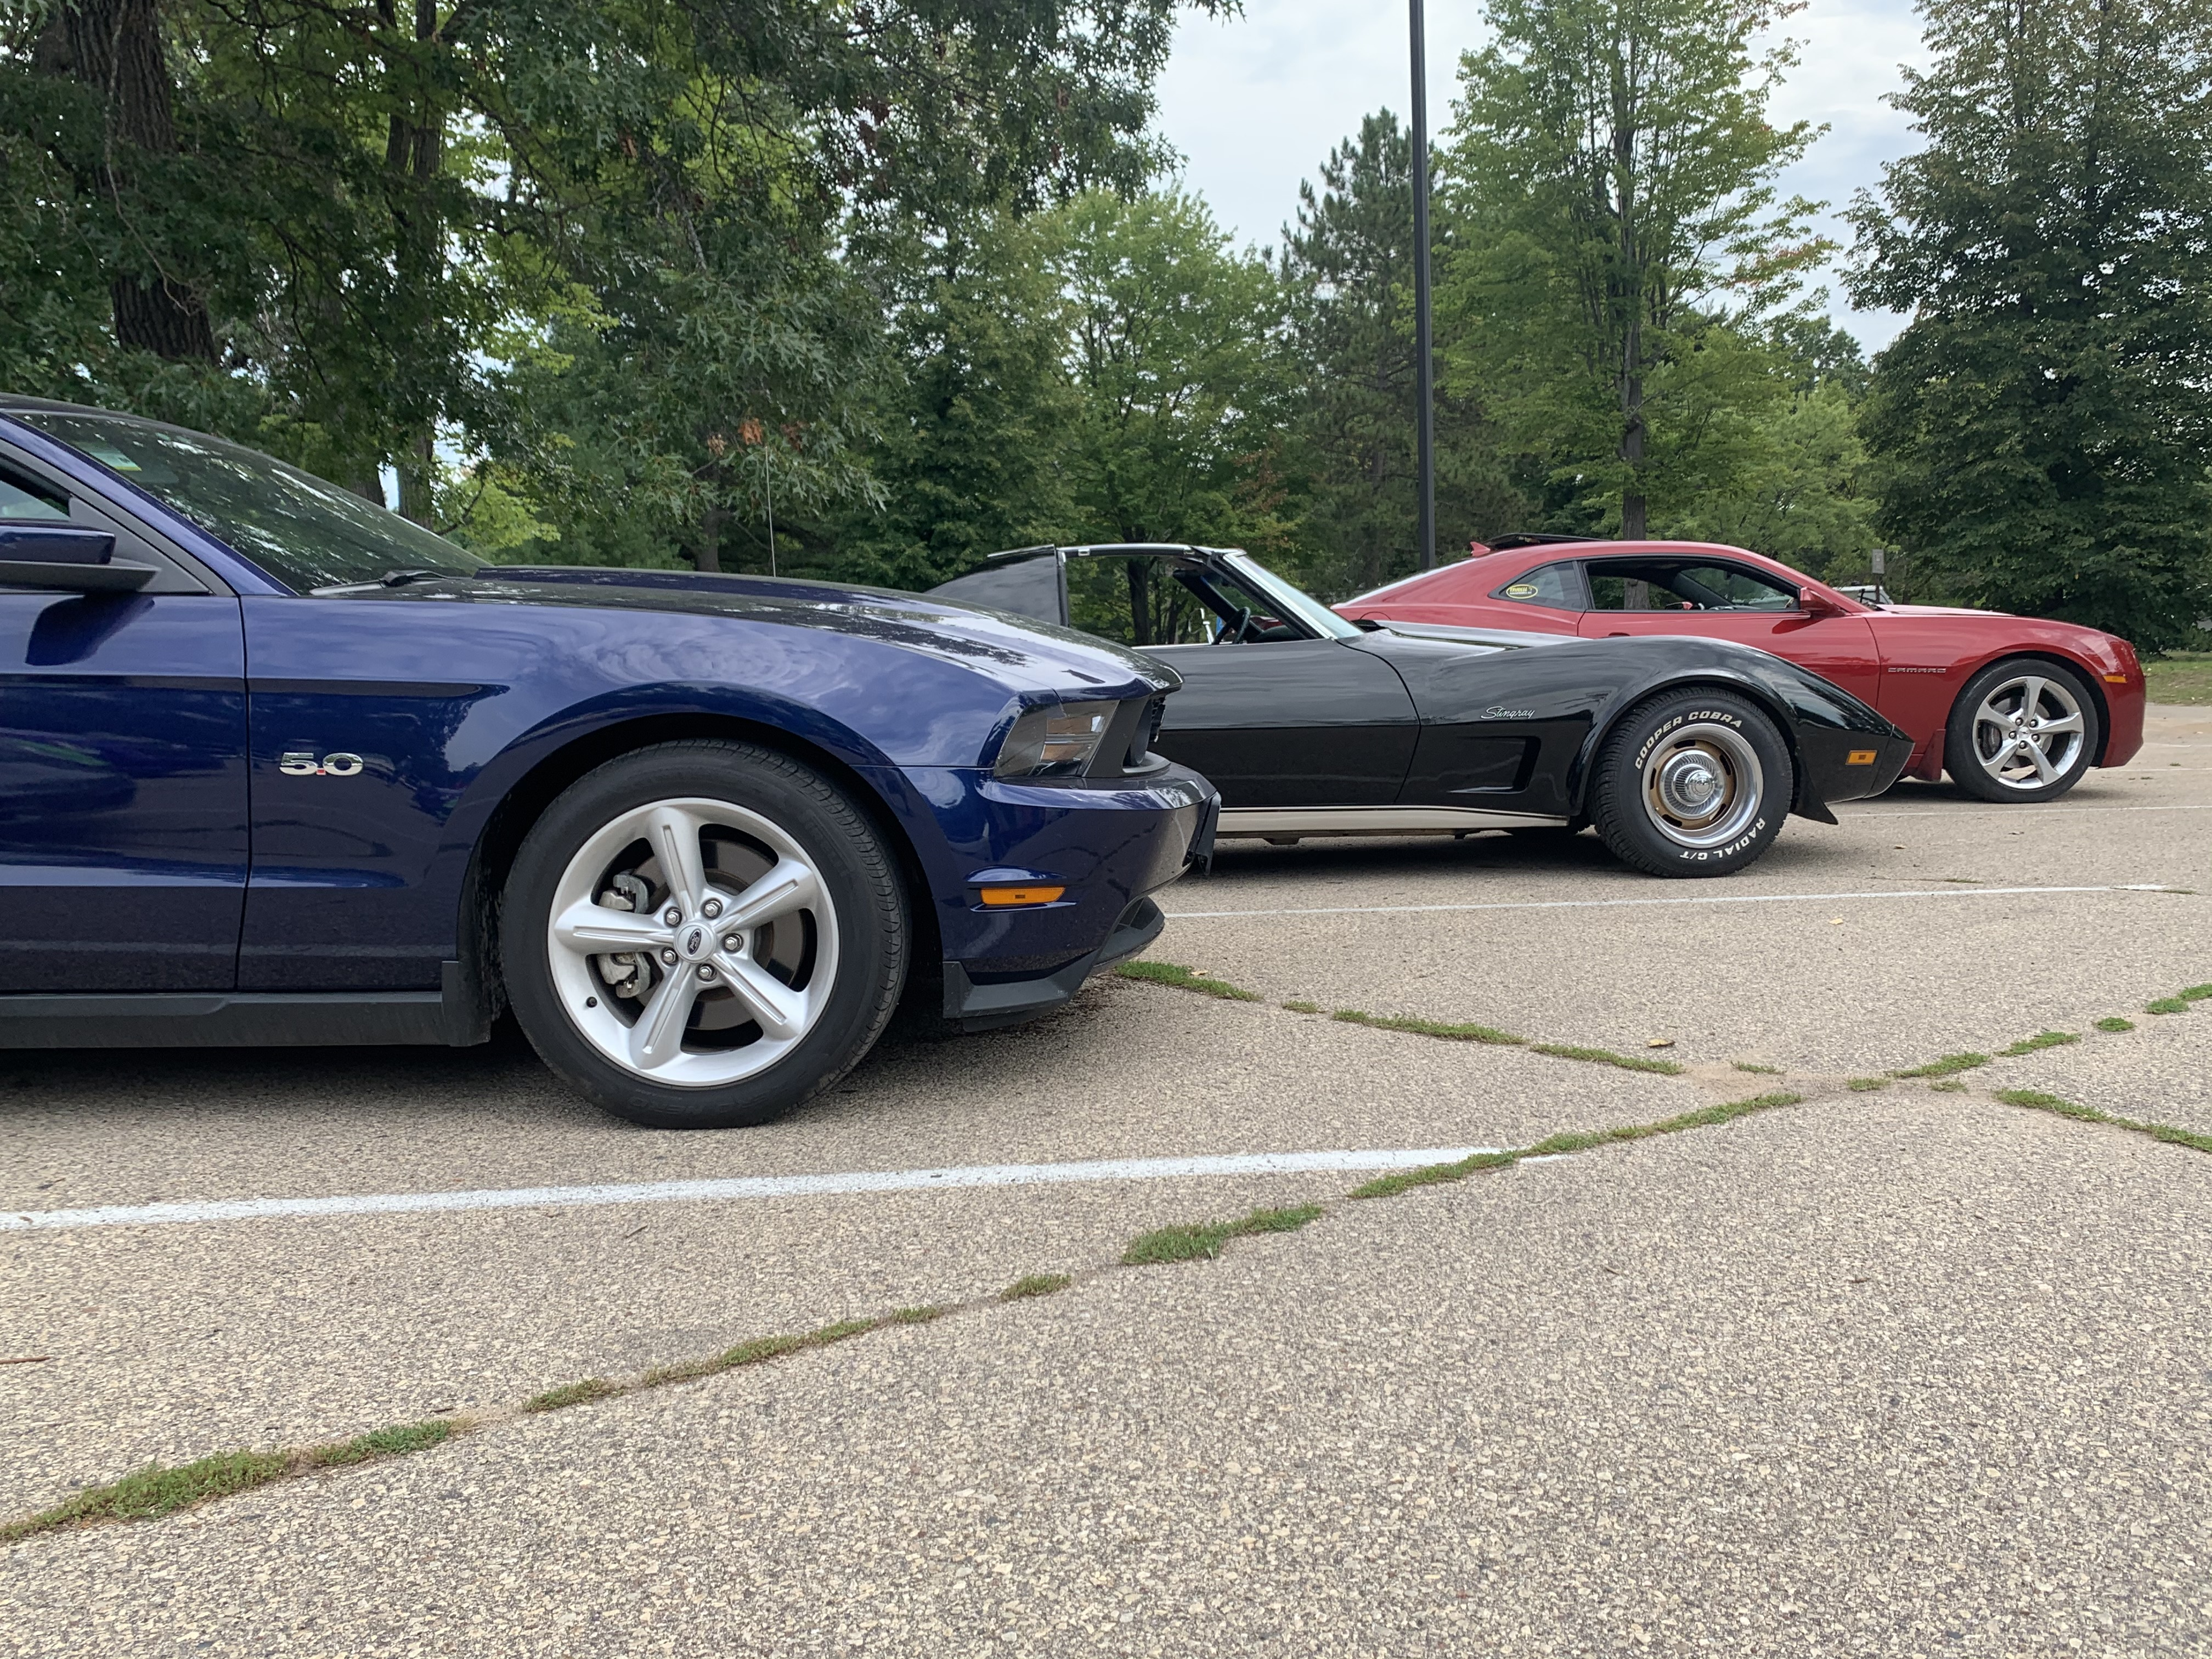 Sports cars line up in the parking lot of Shawano Lake County Park during the car show on Sept. 12.Luke Reimer | NEW Media